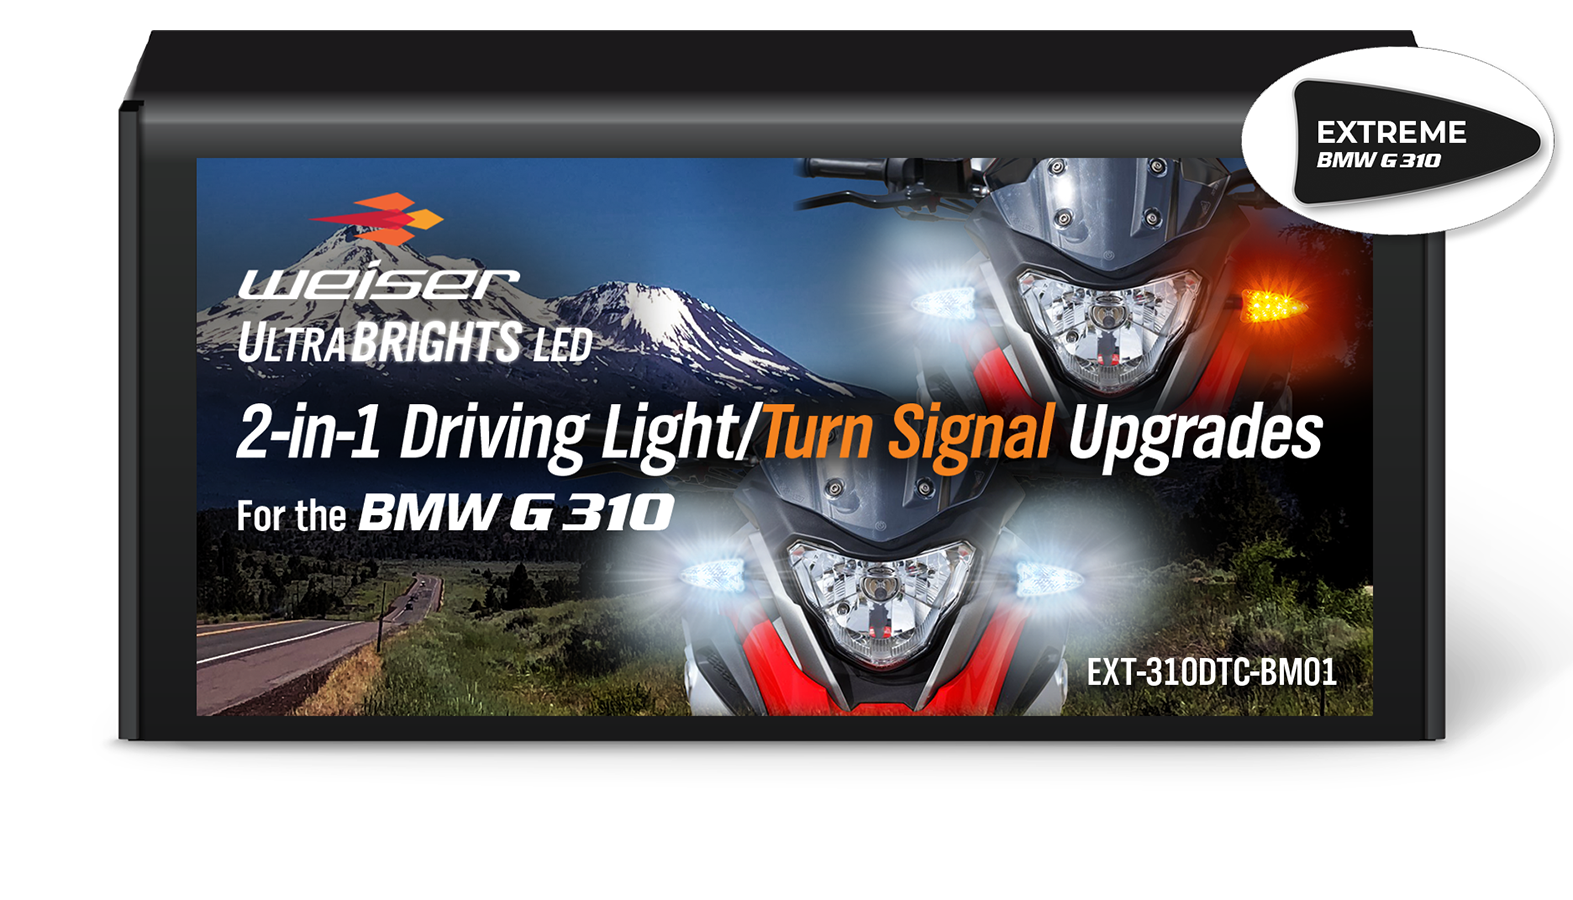 Extreme 2-in-1 LED WHITE Driving Light/AMBER Turn Signal Upgrades for the BMW G 310 (all variants) EXT-310DTC-BM01